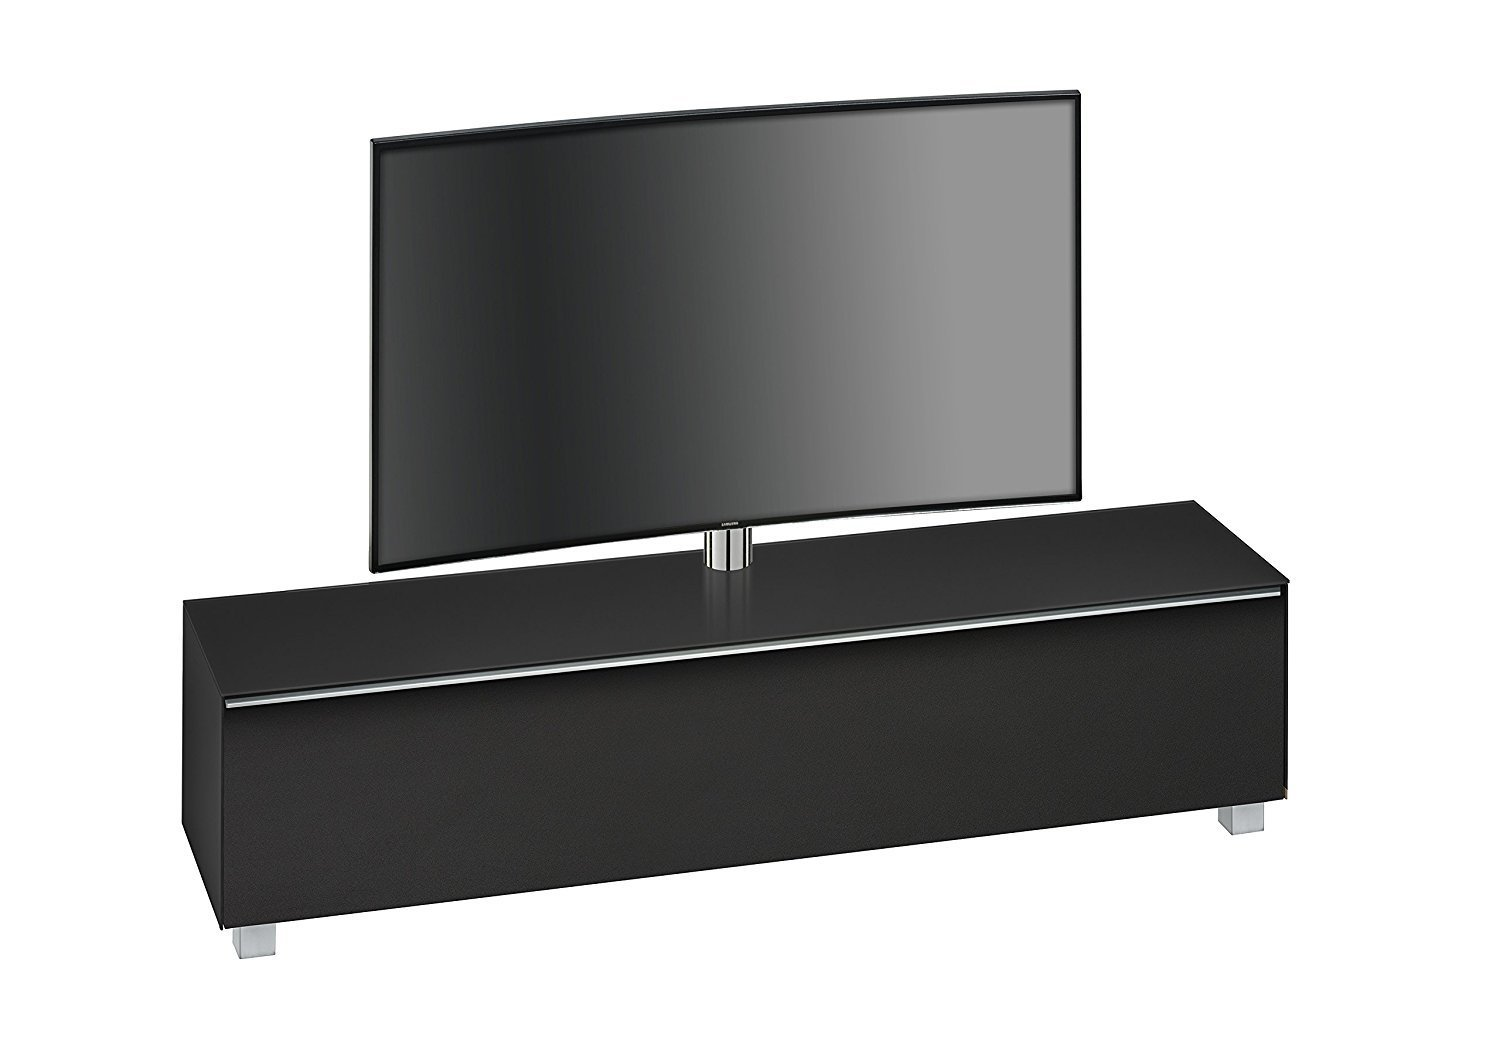 maja 7740 soundboard mit tv halterung in schwarzglas matt 180 cm breit. Black Bedroom Furniture Sets. Home Design Ideas